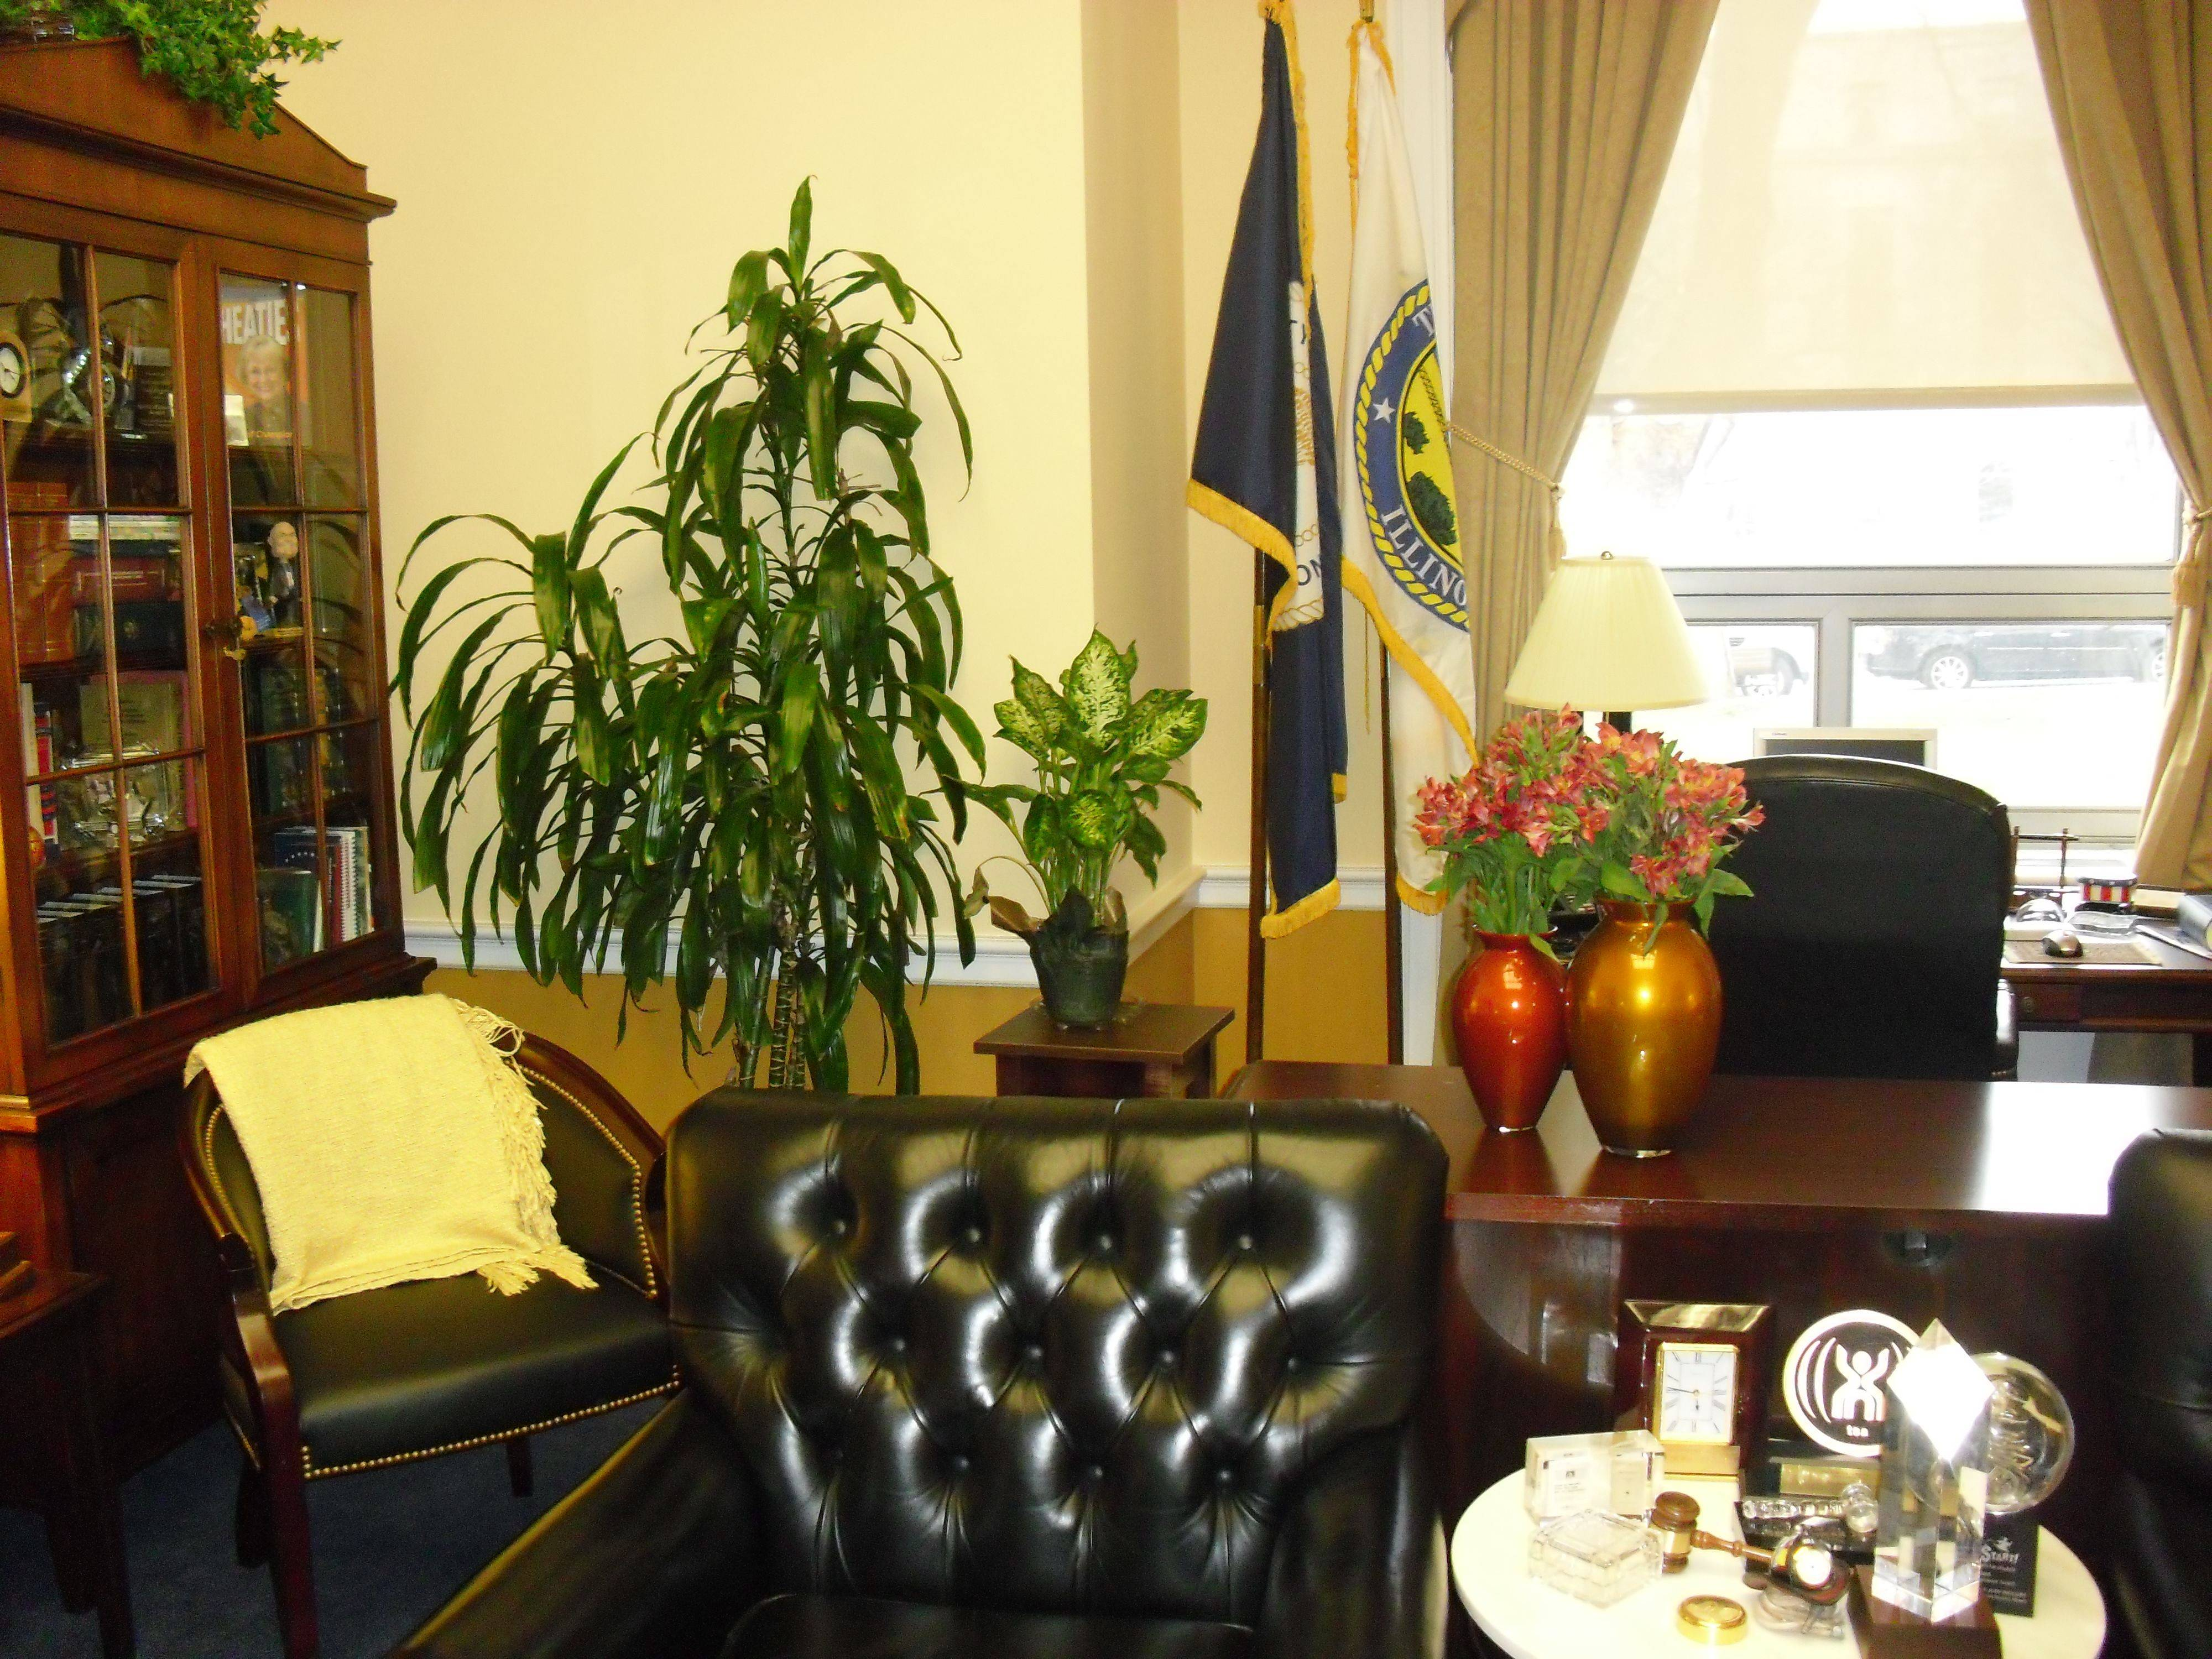 U.S. Rep. Judy Biggert's office is a bright, sunny yellow, warm and welcoming.